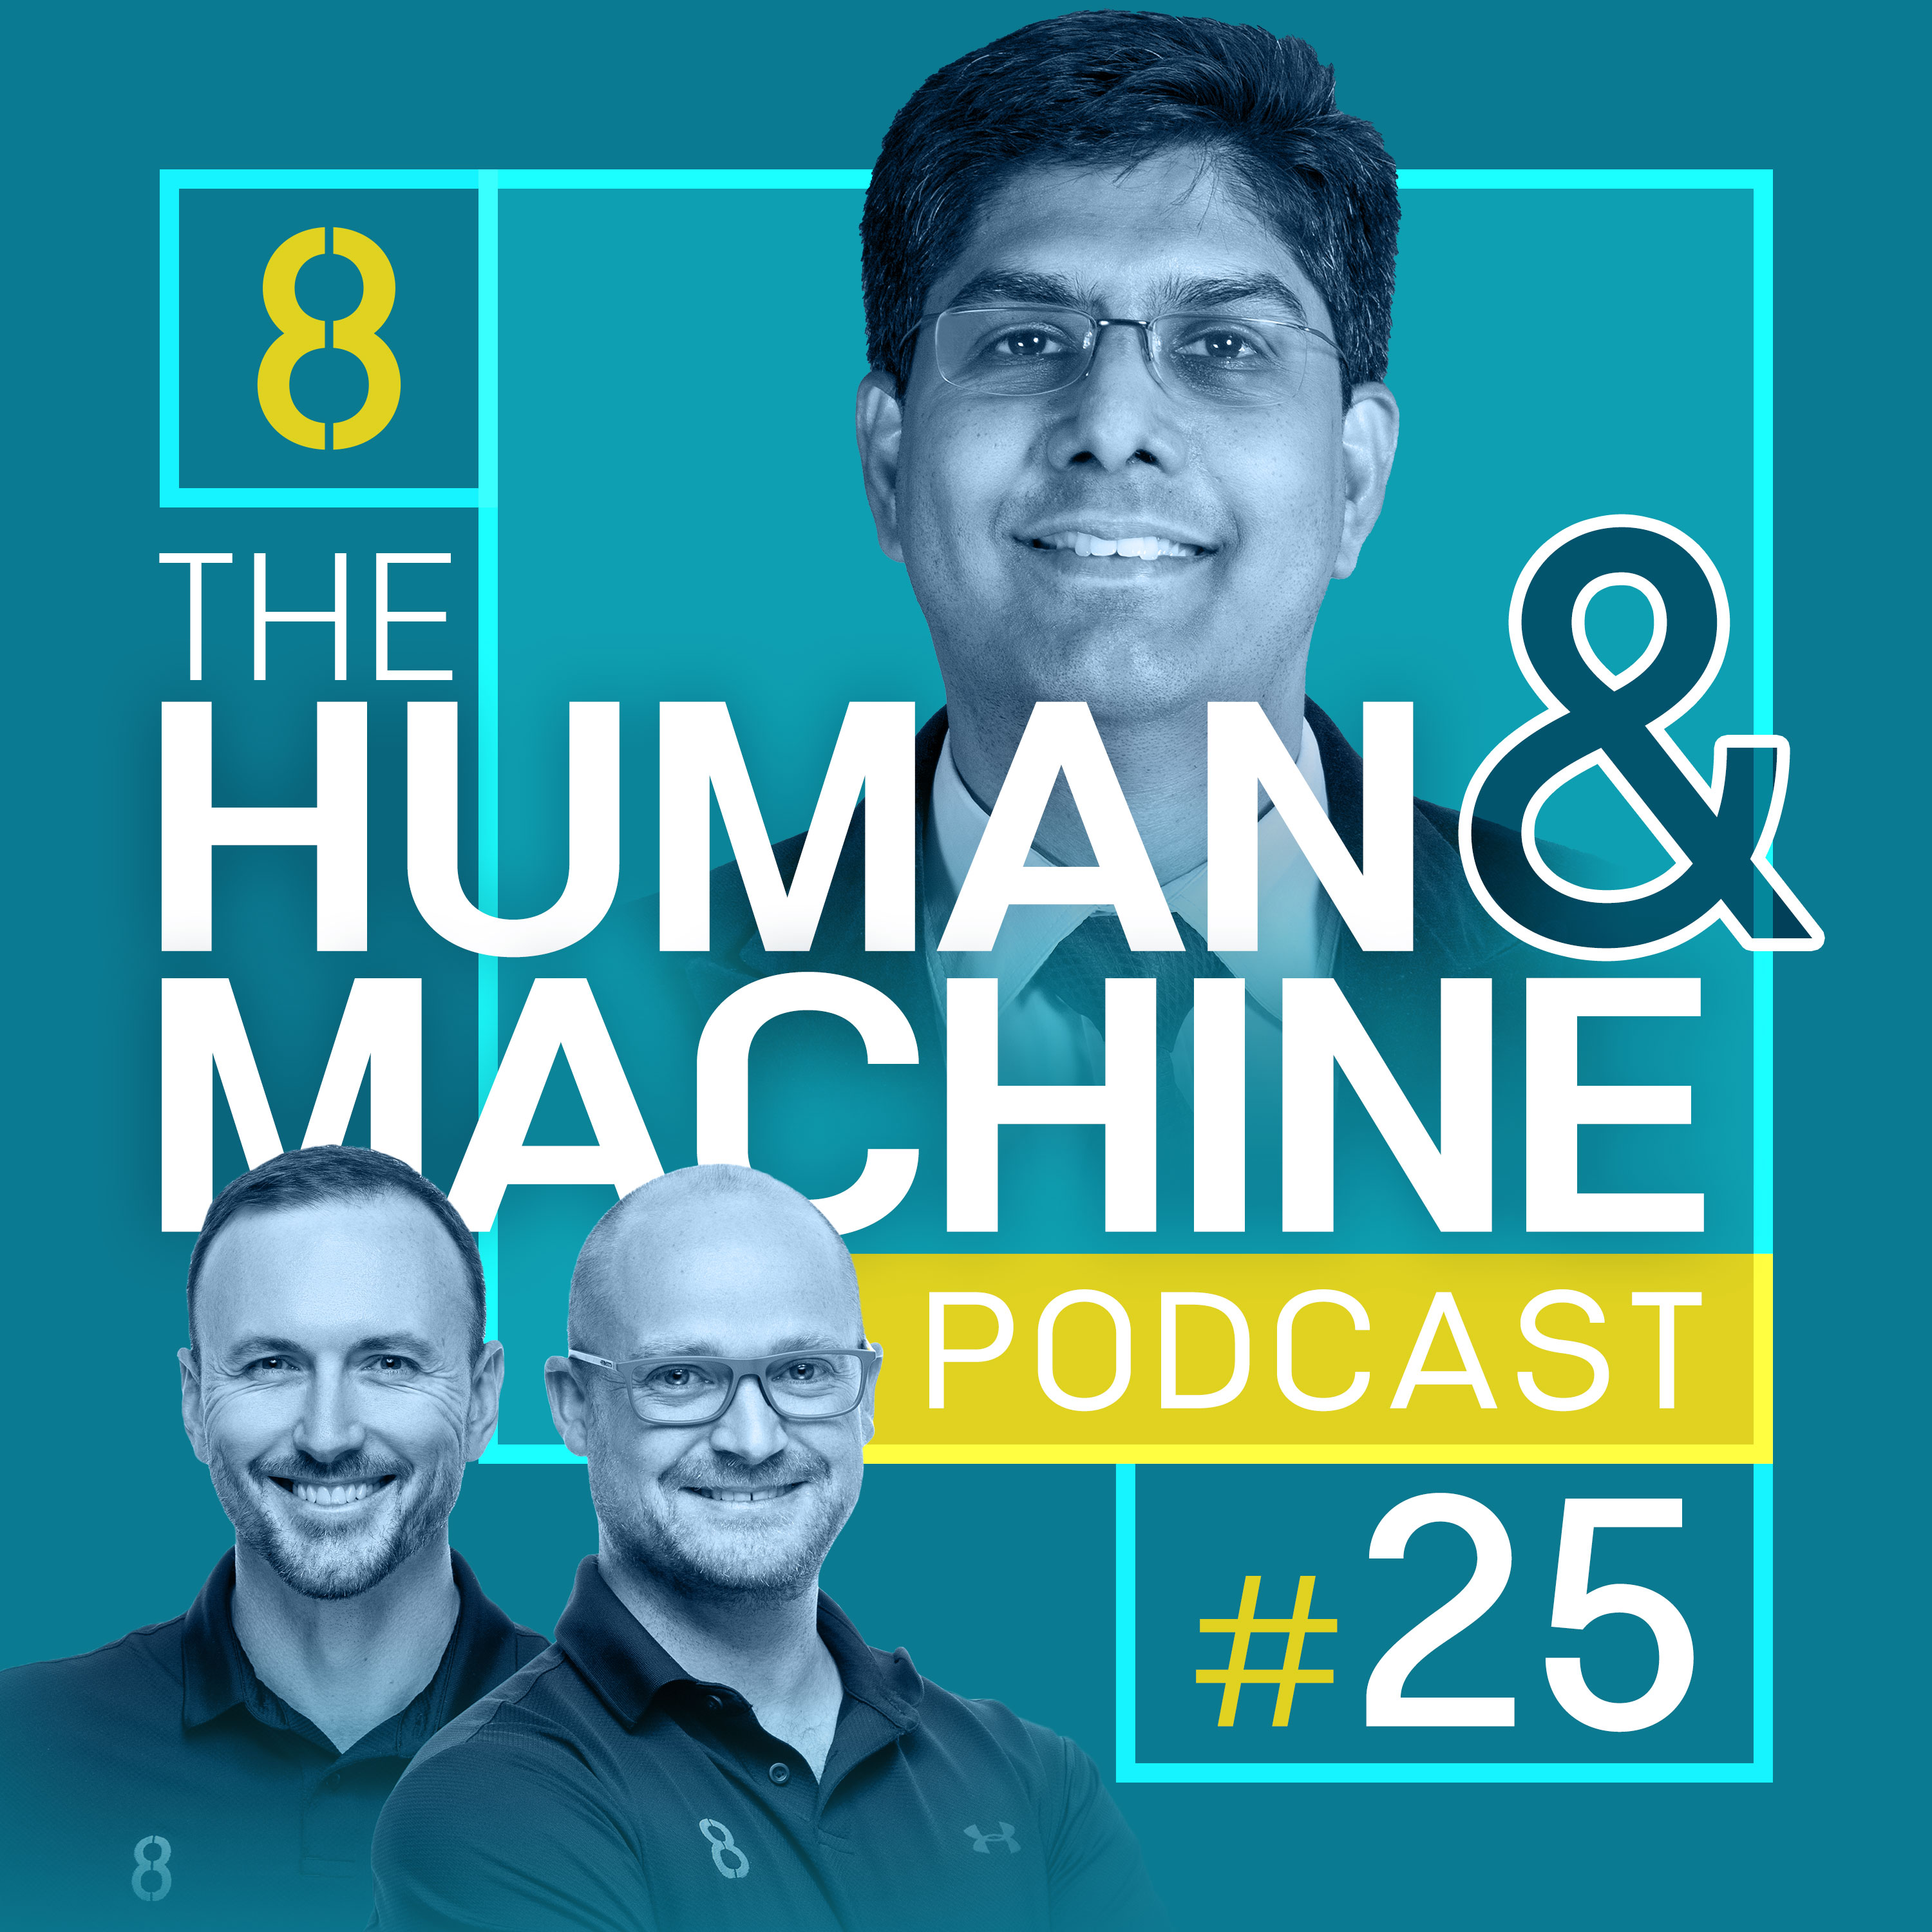 Ep 25 | South Africa's Manufacturing Opportunity with Vinesh Maharaj